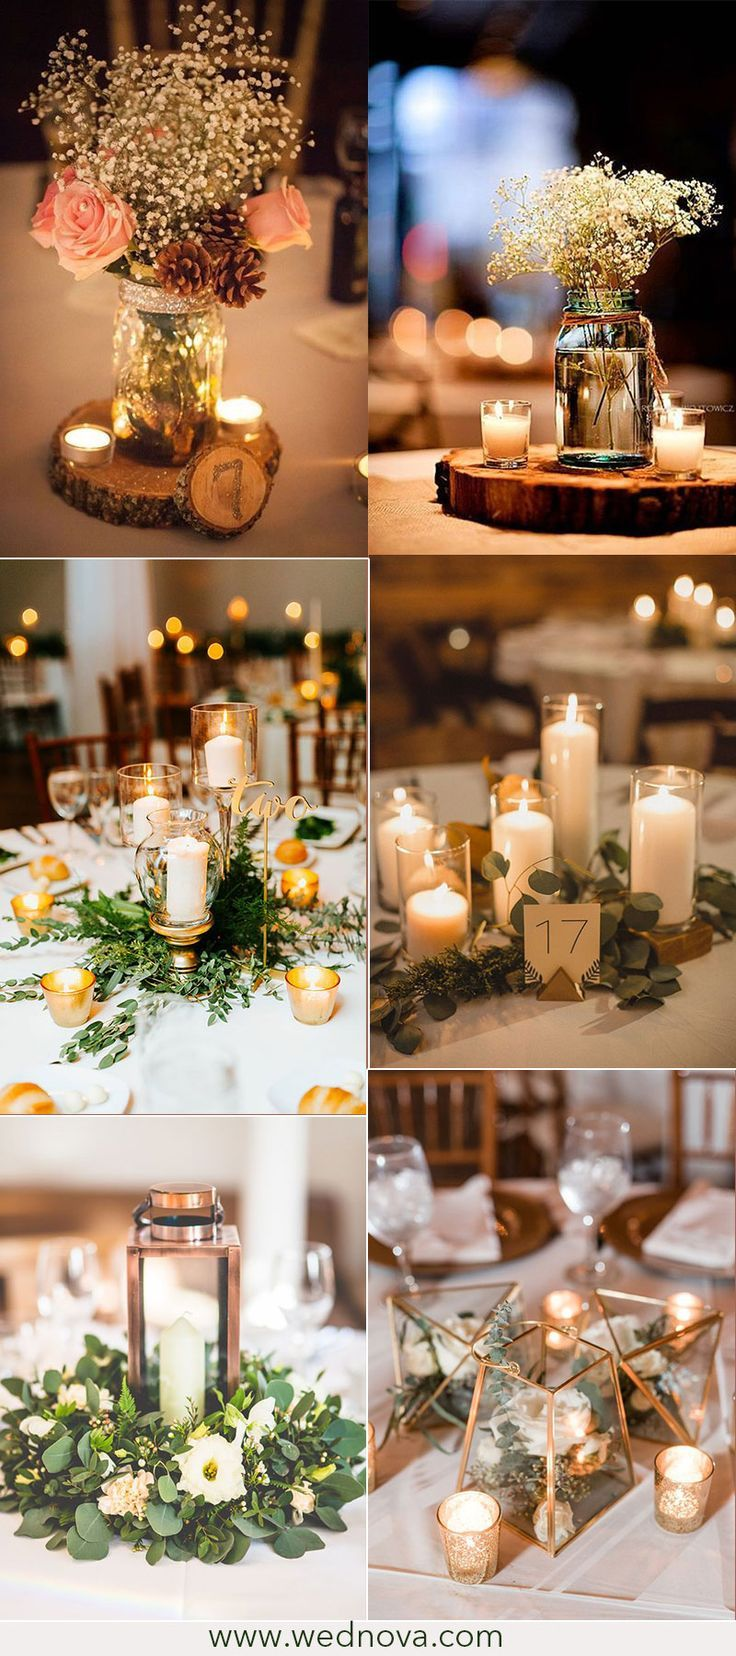 32 Greenery Wedding Decor Ideas: Budget and Eco Friendly Wedding